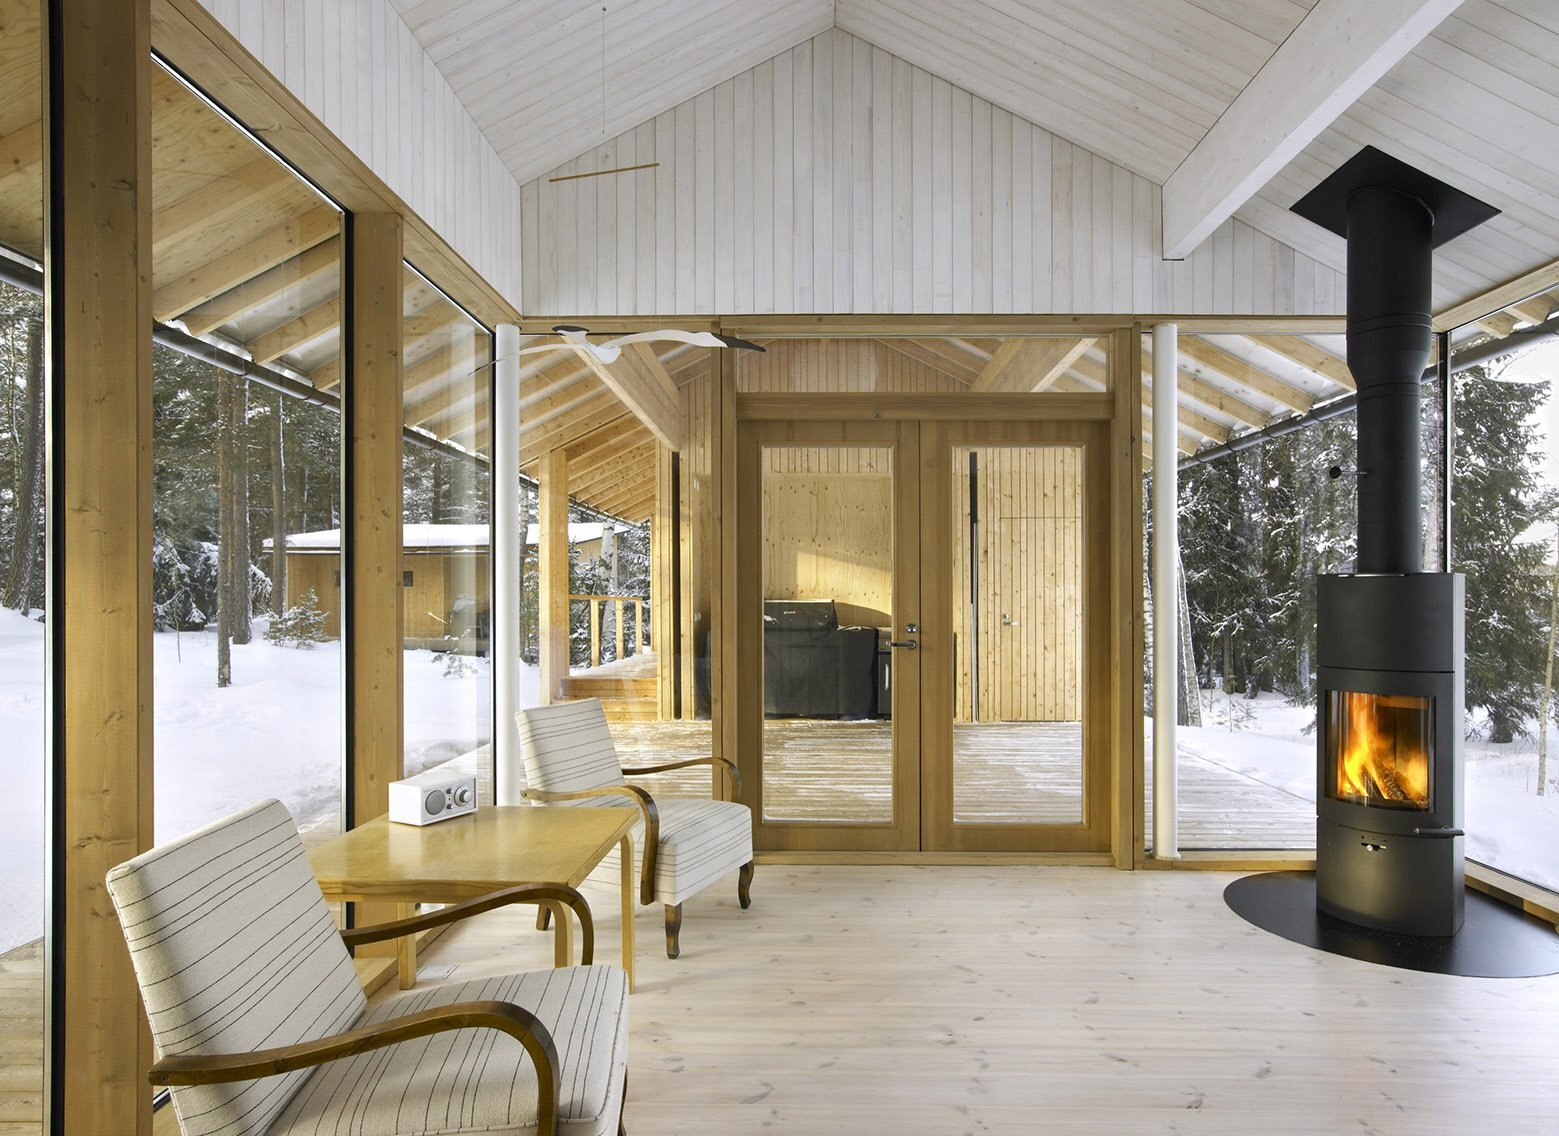 Villa Kallioniemi - Winter Cabin - K2S Architects - Finland - Living Area - Humble Homes